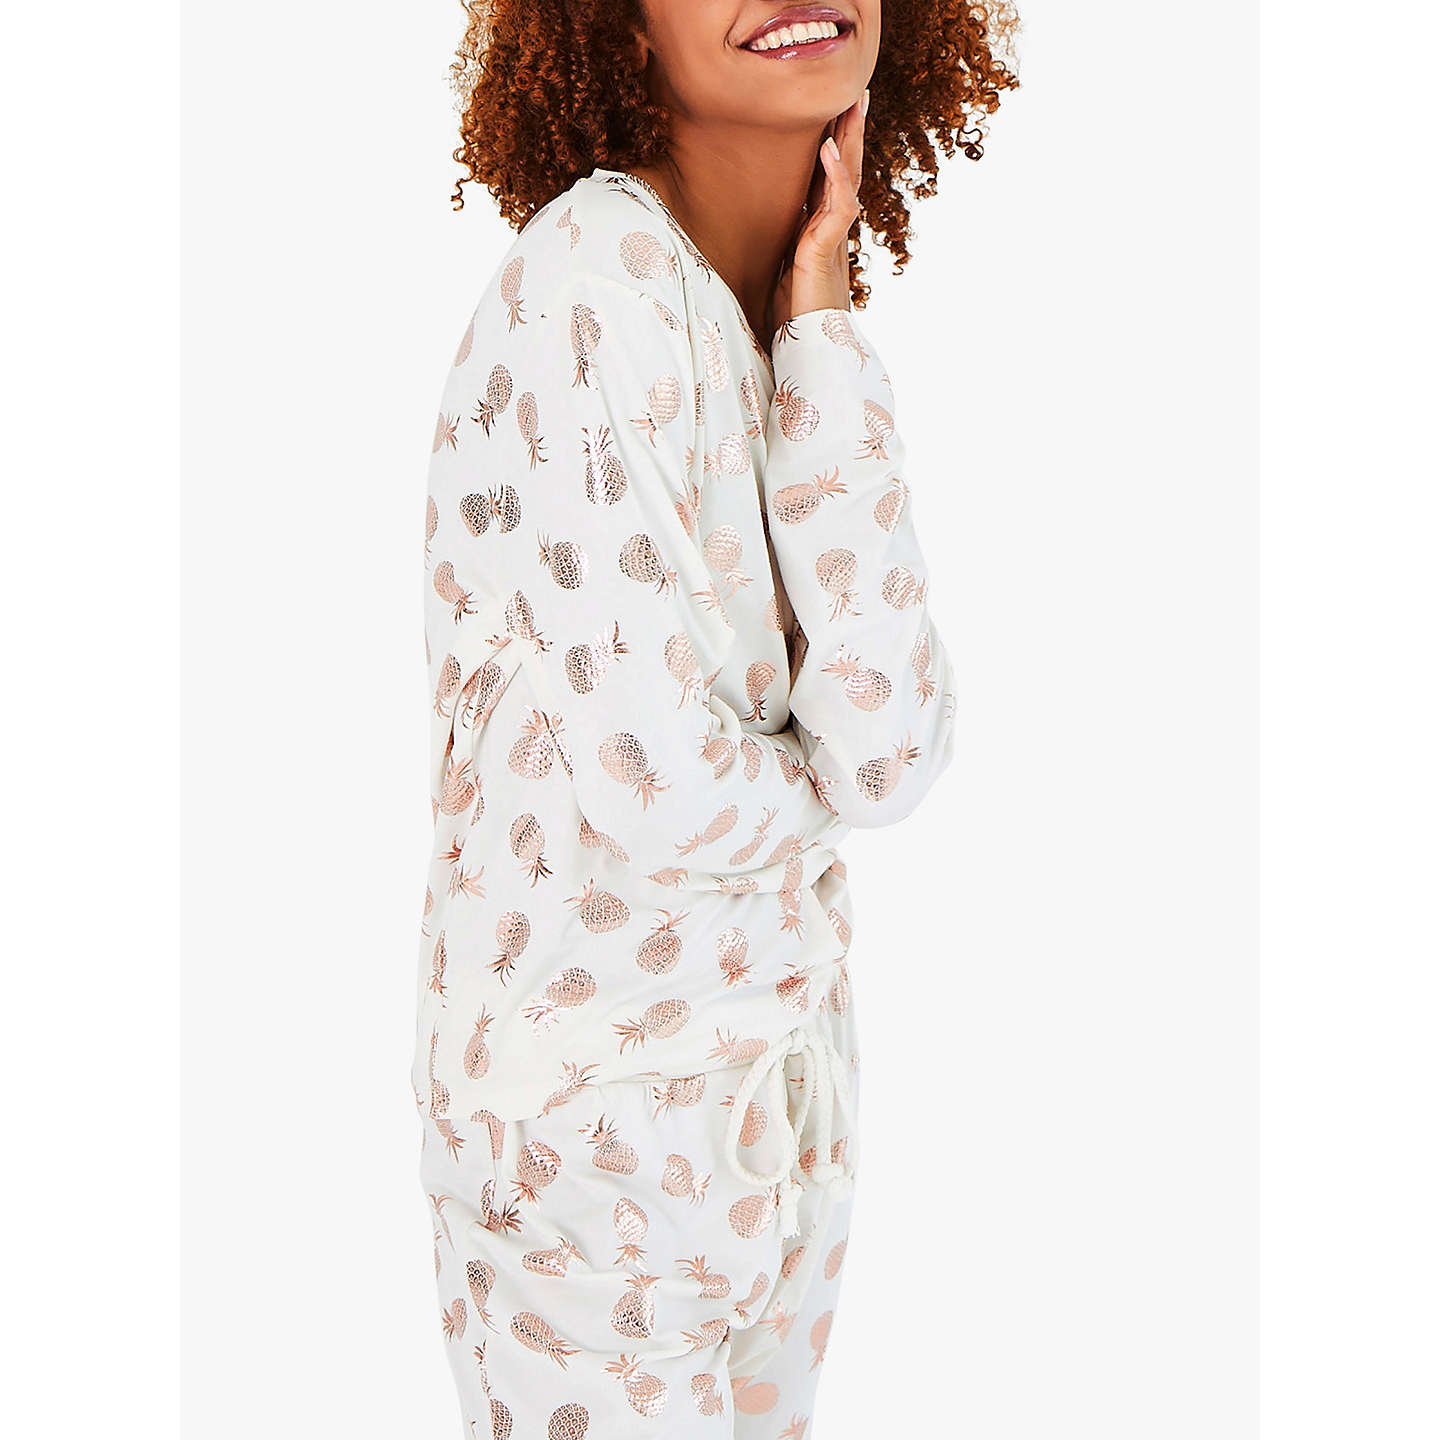 BuyChelsea Peers Pineapple Print Pyjama Set, Ivory/Rose Gold, S Online at johnlewis.com